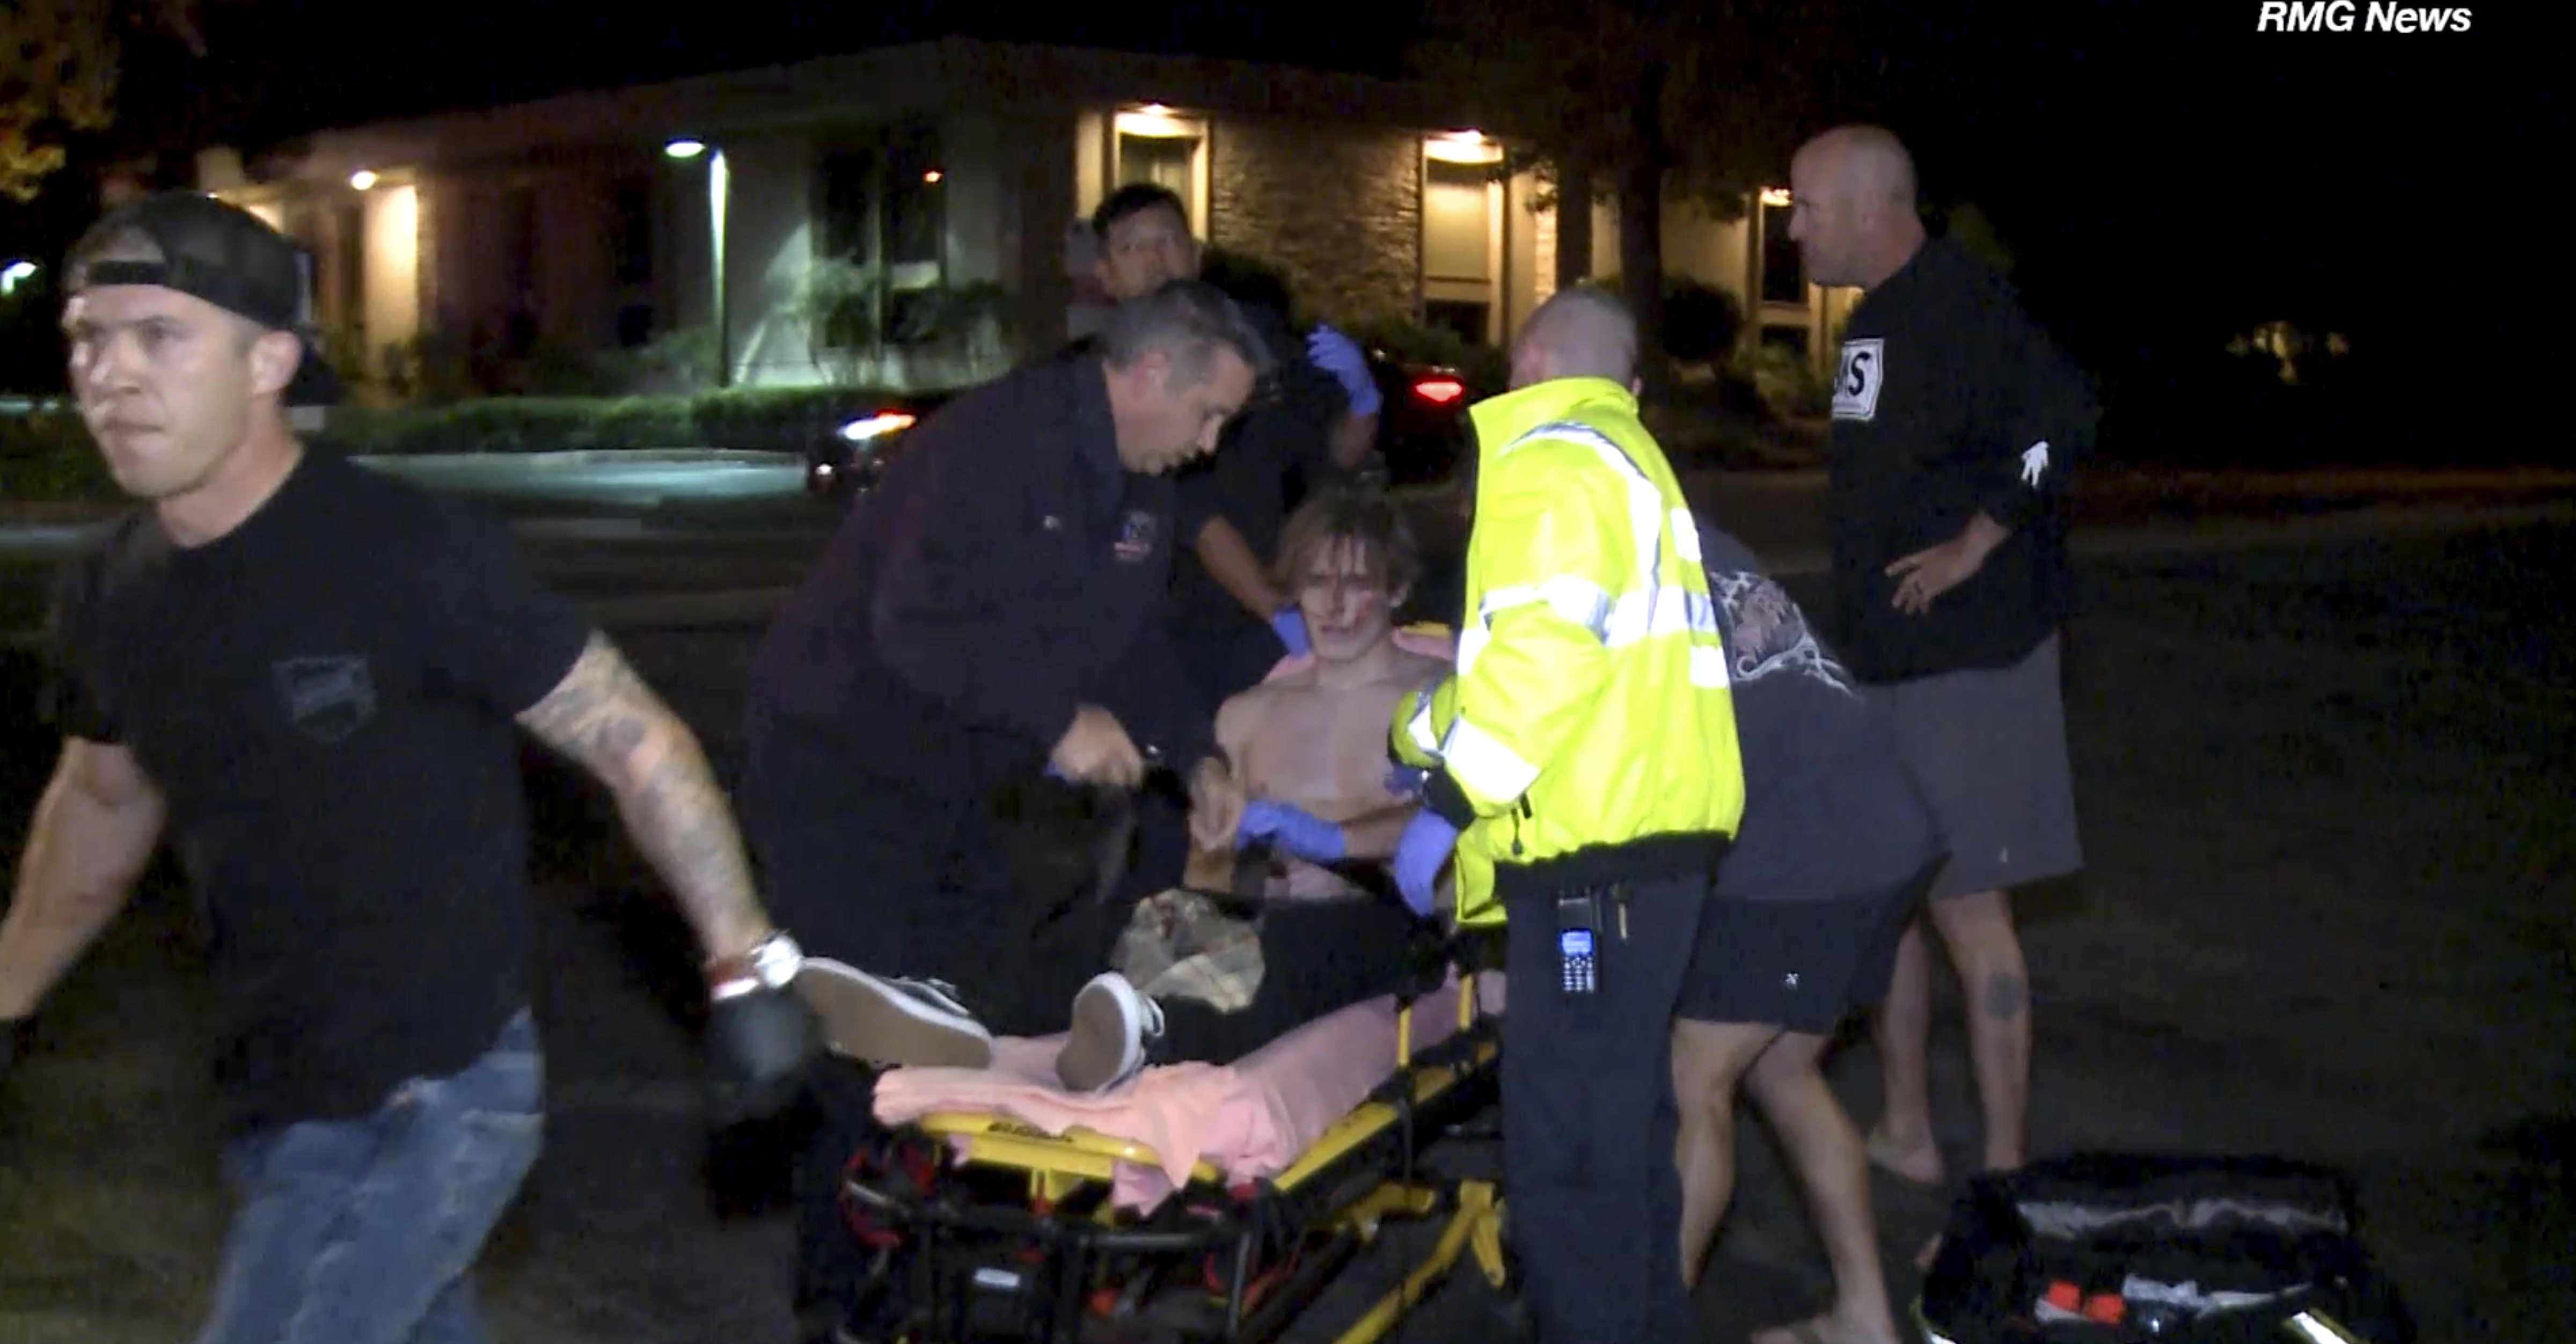 In this image taken from video a victim is treated near the scene of a shooting, Wednesday evening, Nov. 7, 2018, in Thousand Oaks, Calif. A hooded gunman dressed entirely in black opened fire on a crowd at a country dance bar holding a weekly